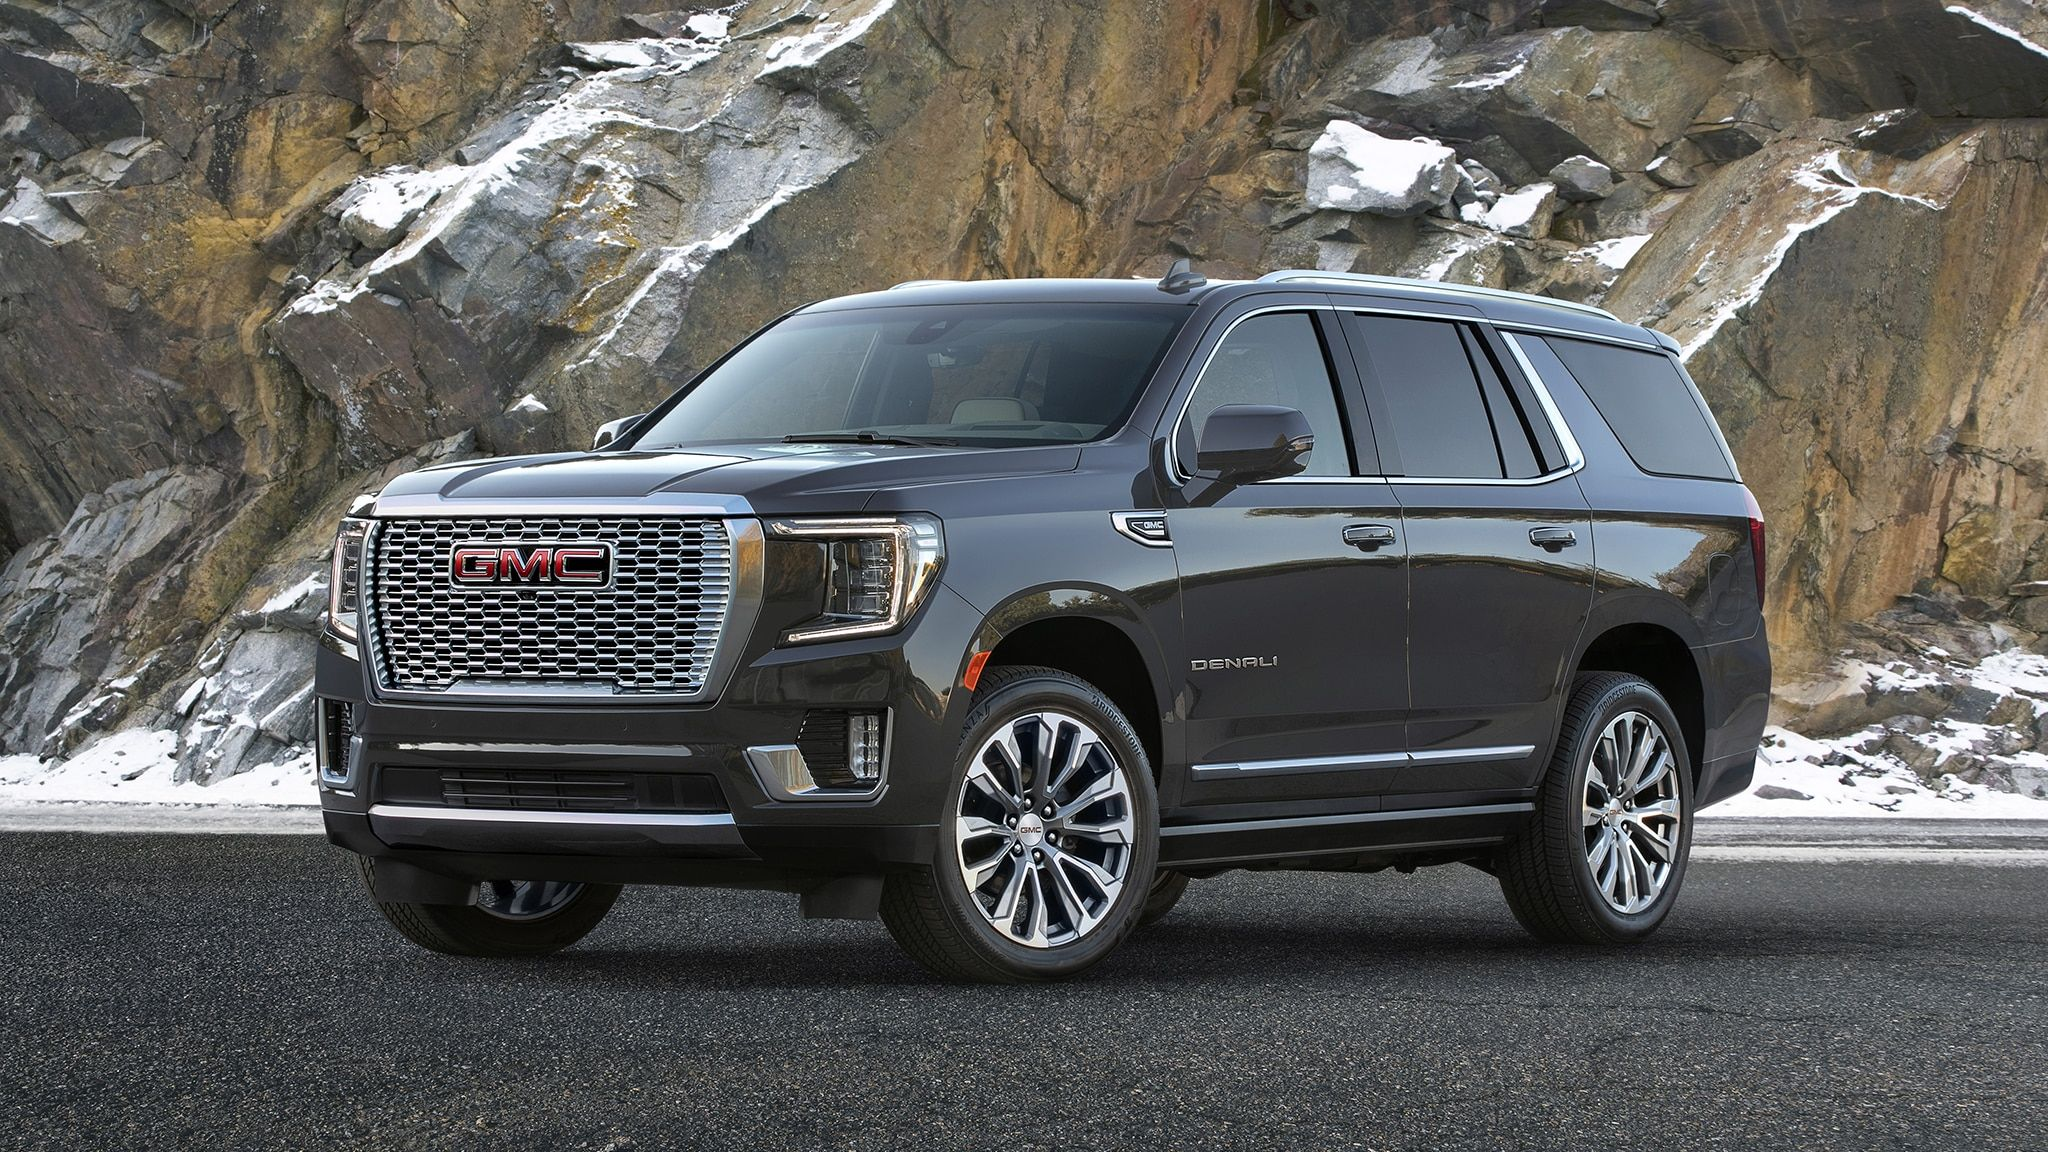 2021 Gmc Yukon Yukon Xl Move Further Away From Chevy Chevy Motors Yukon Denali Chevy